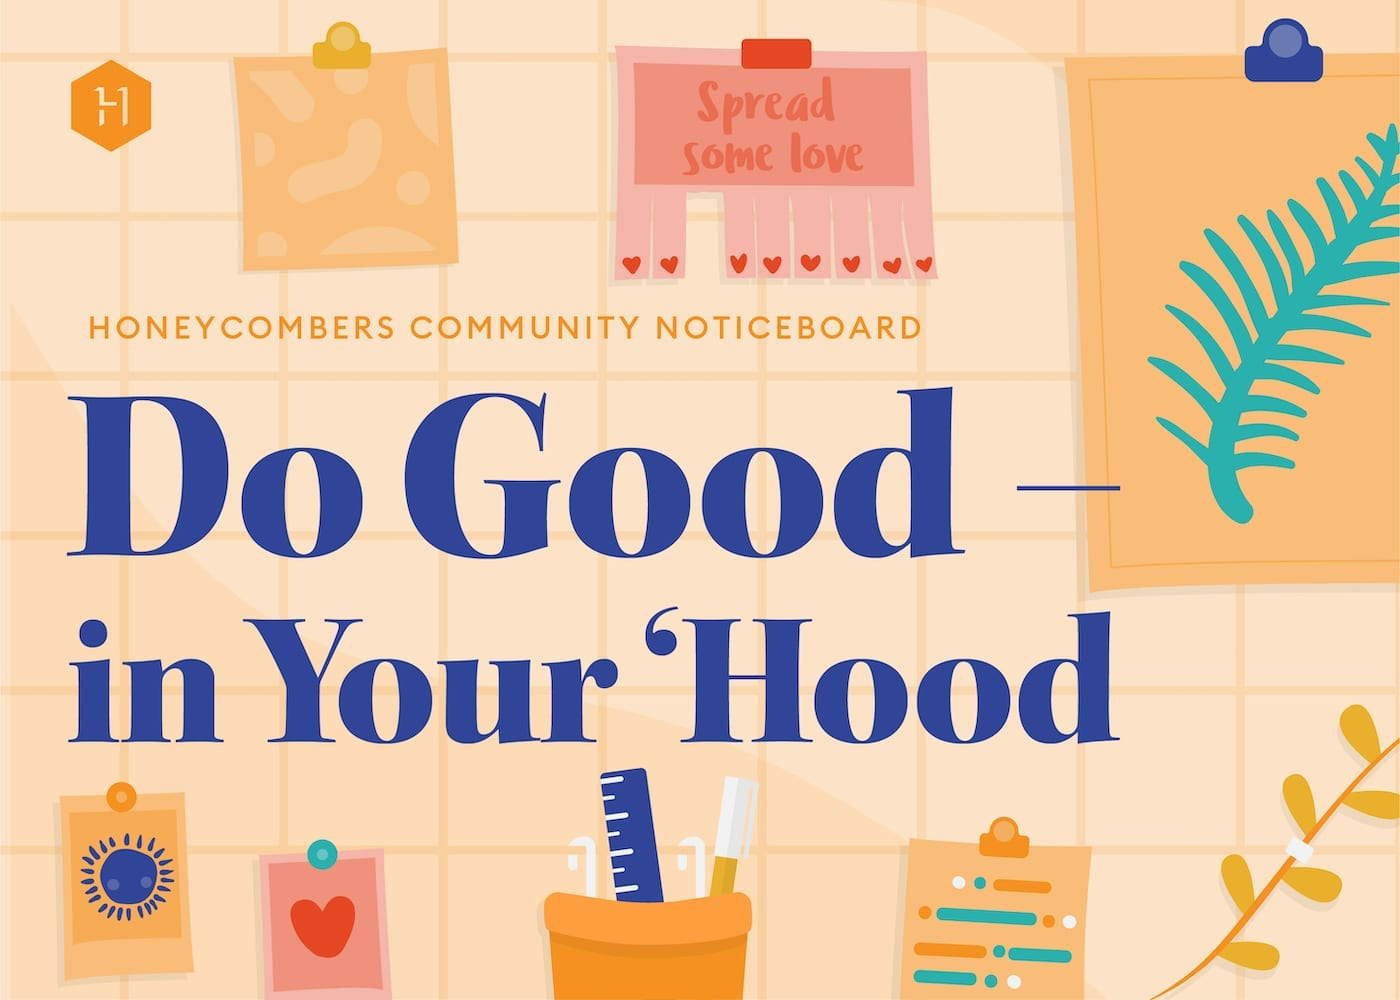 Add your Covid-19 deals, courses, webinars, and events to the Honeycombers Community Noticeboard (IT'S FREE!)